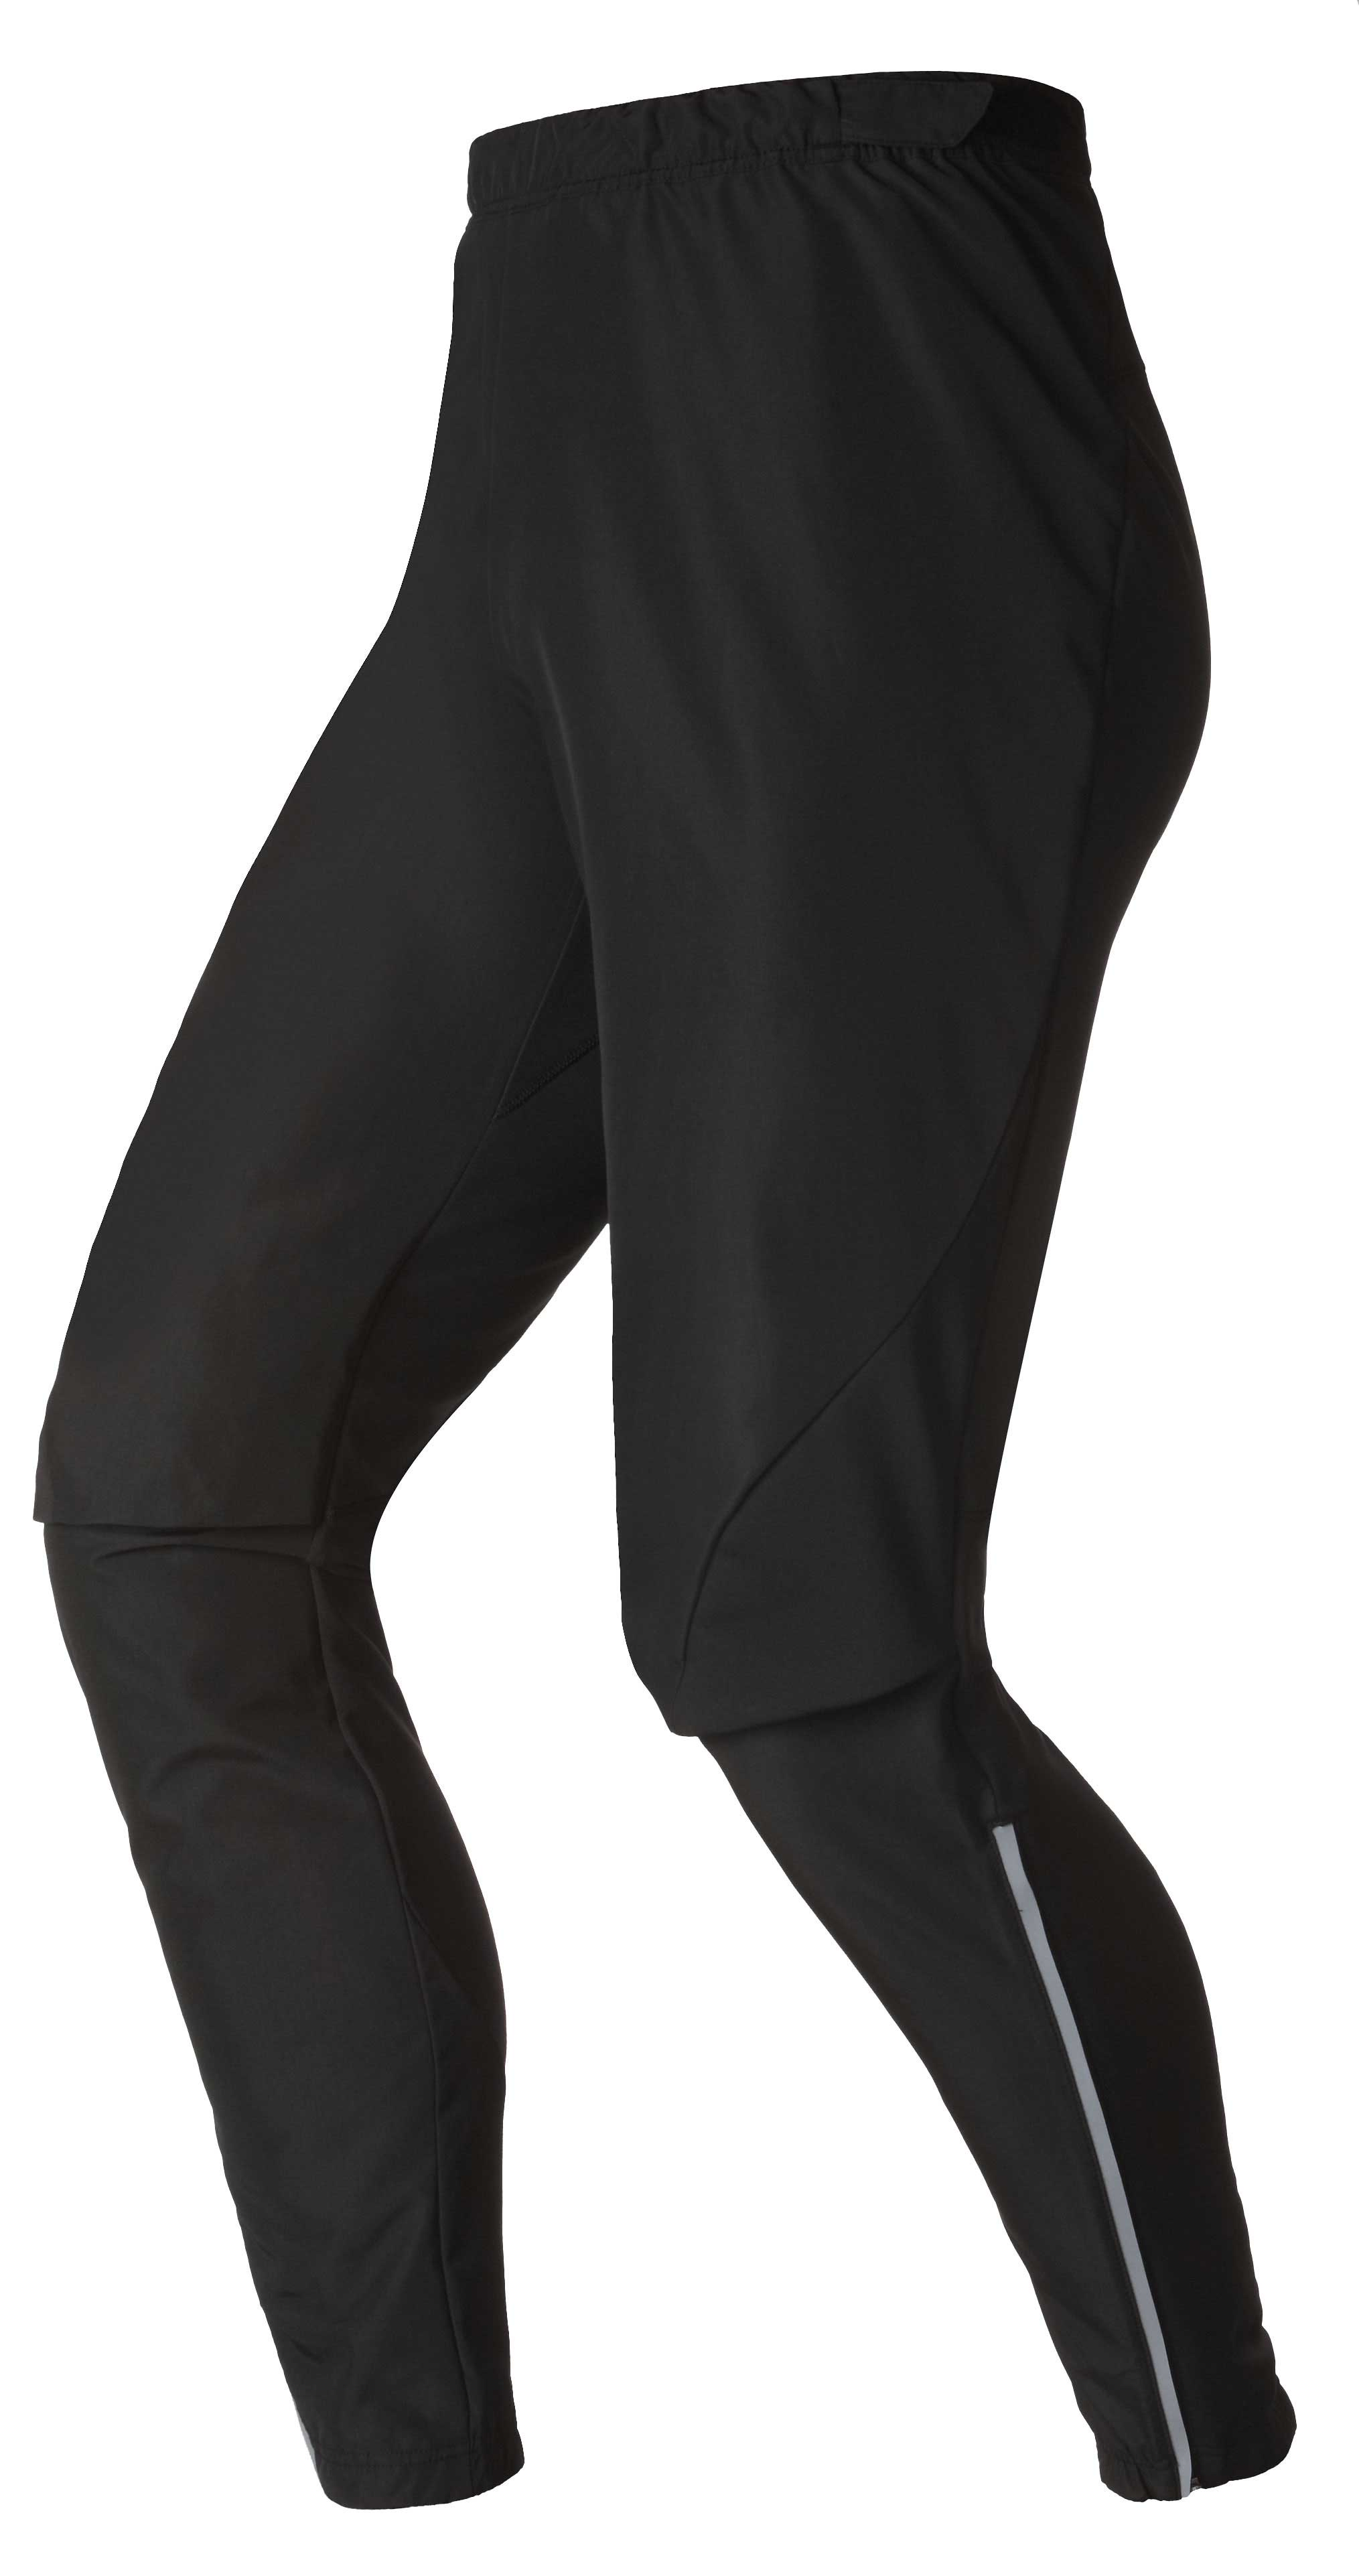 Odlo Pants ENERGY X long size 621806_15000